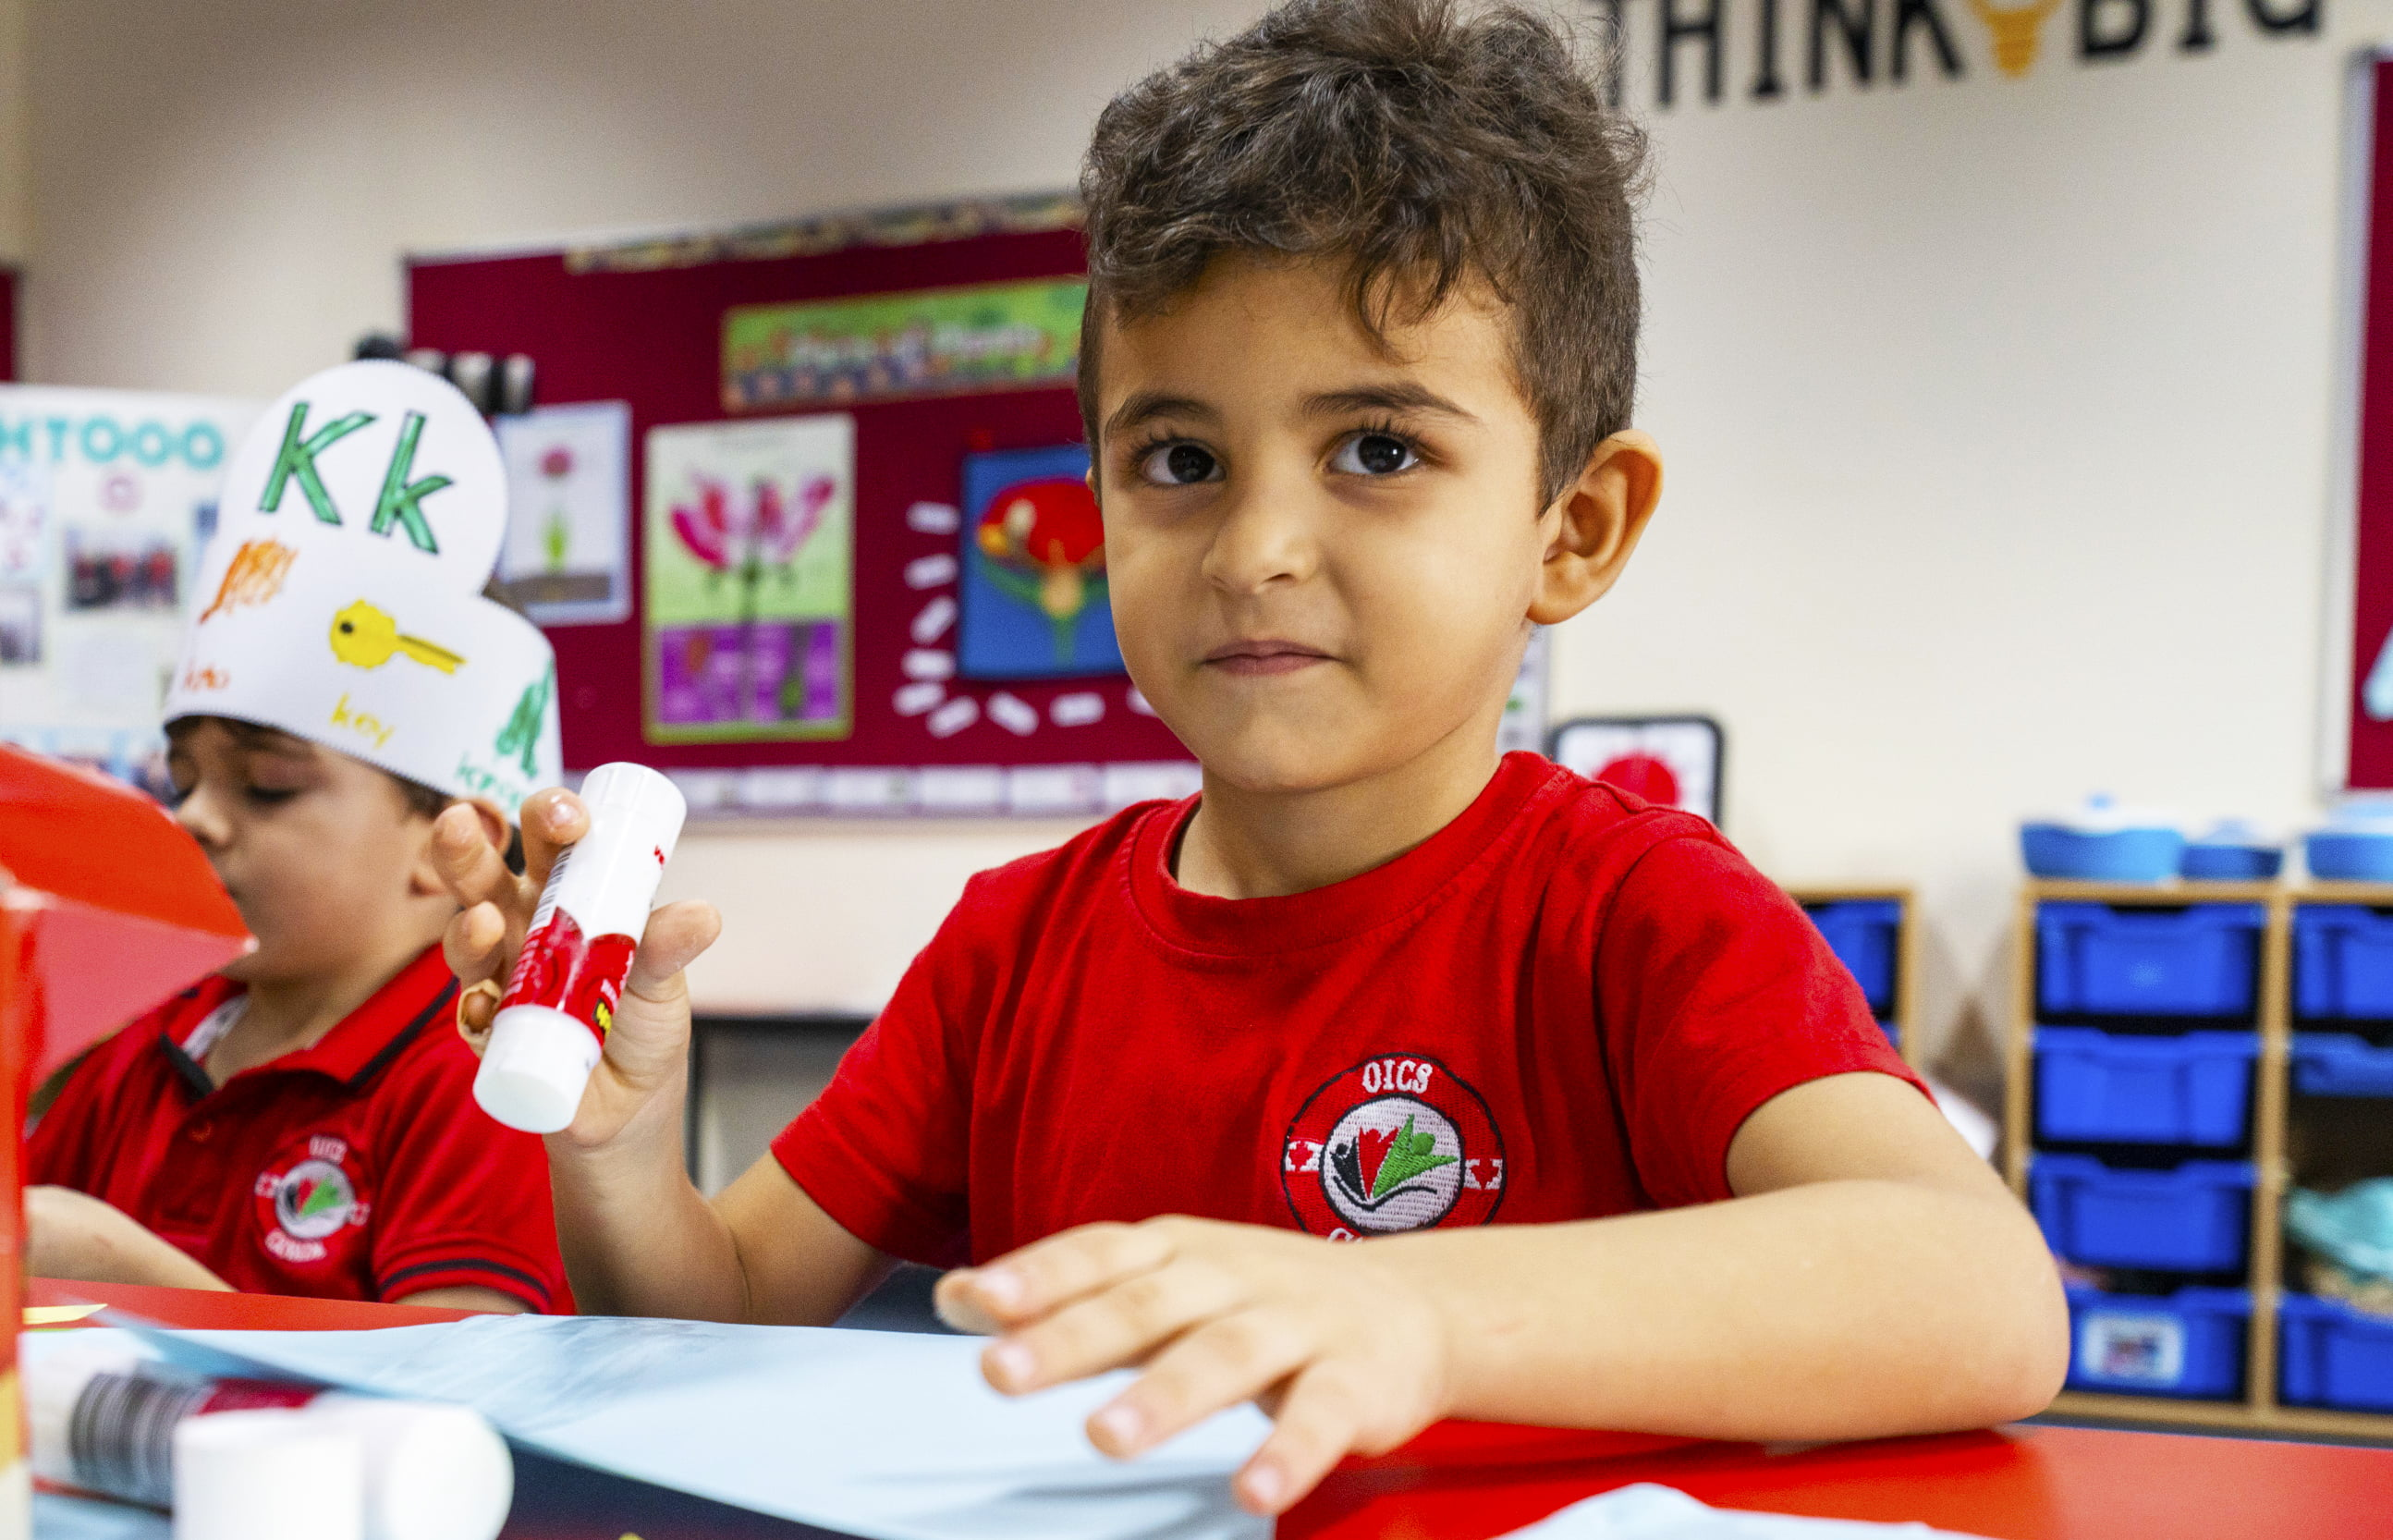 Photograph of a child engaged in 3 dimensional stem activities at the Ontario International Canadian School in Dubai